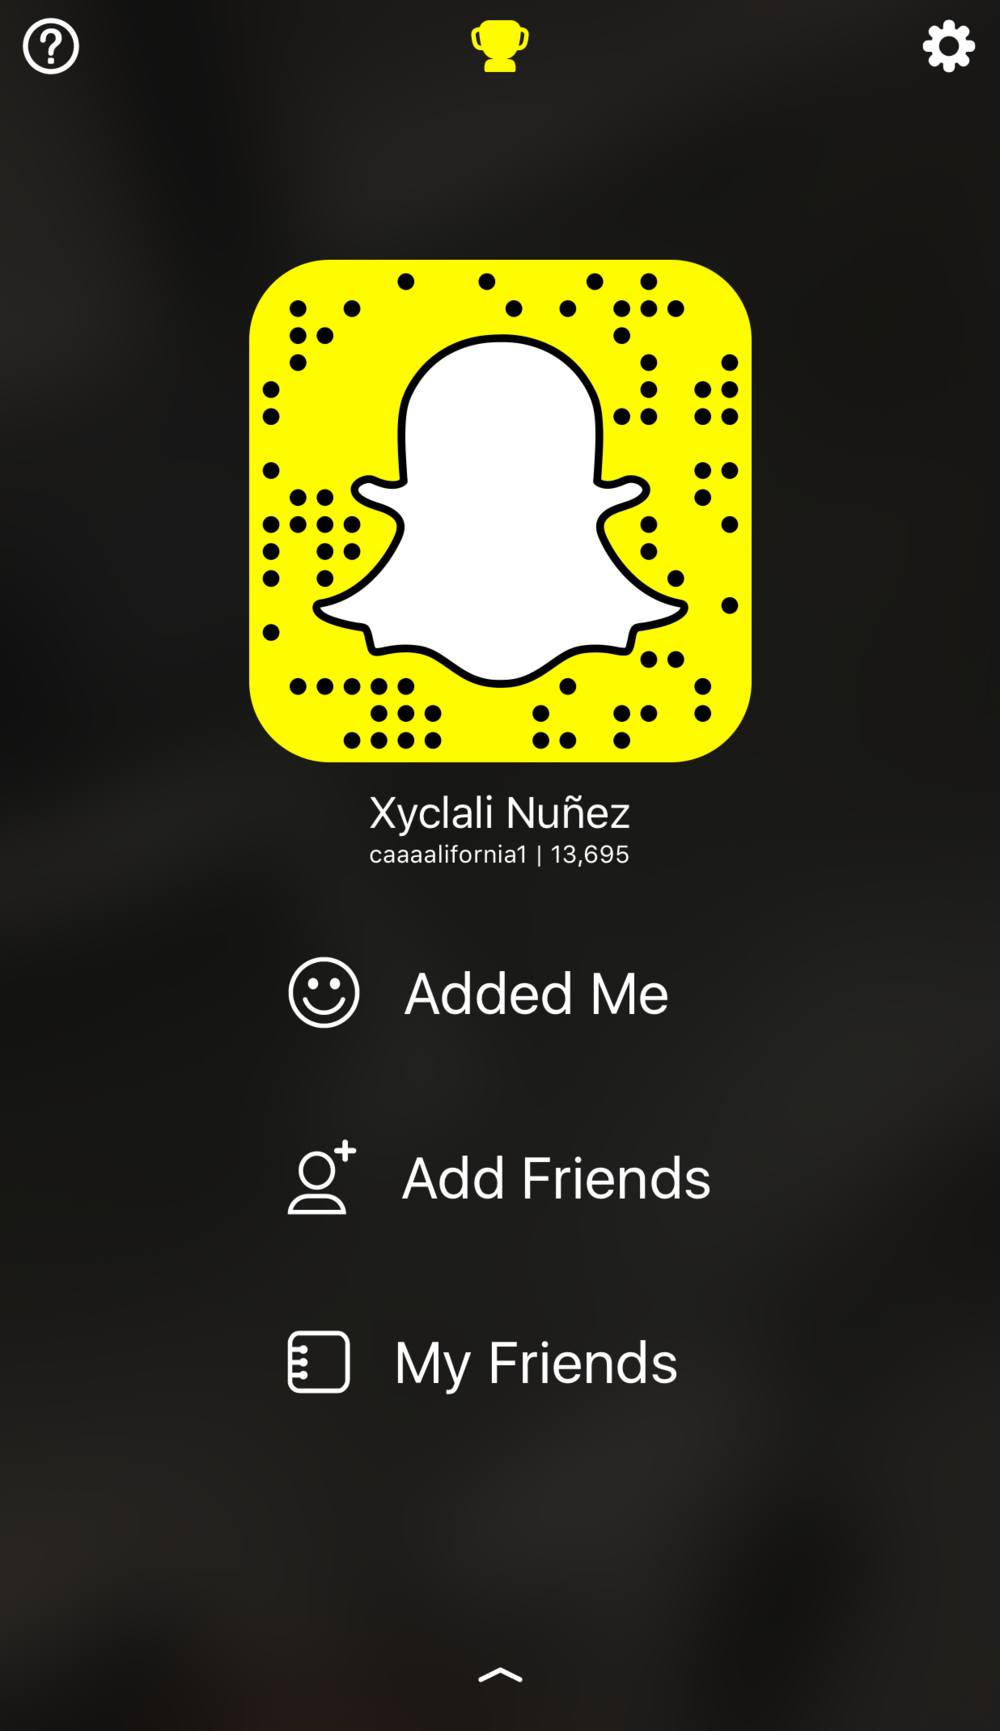 Take a picture with snapchat to add Xyclali.